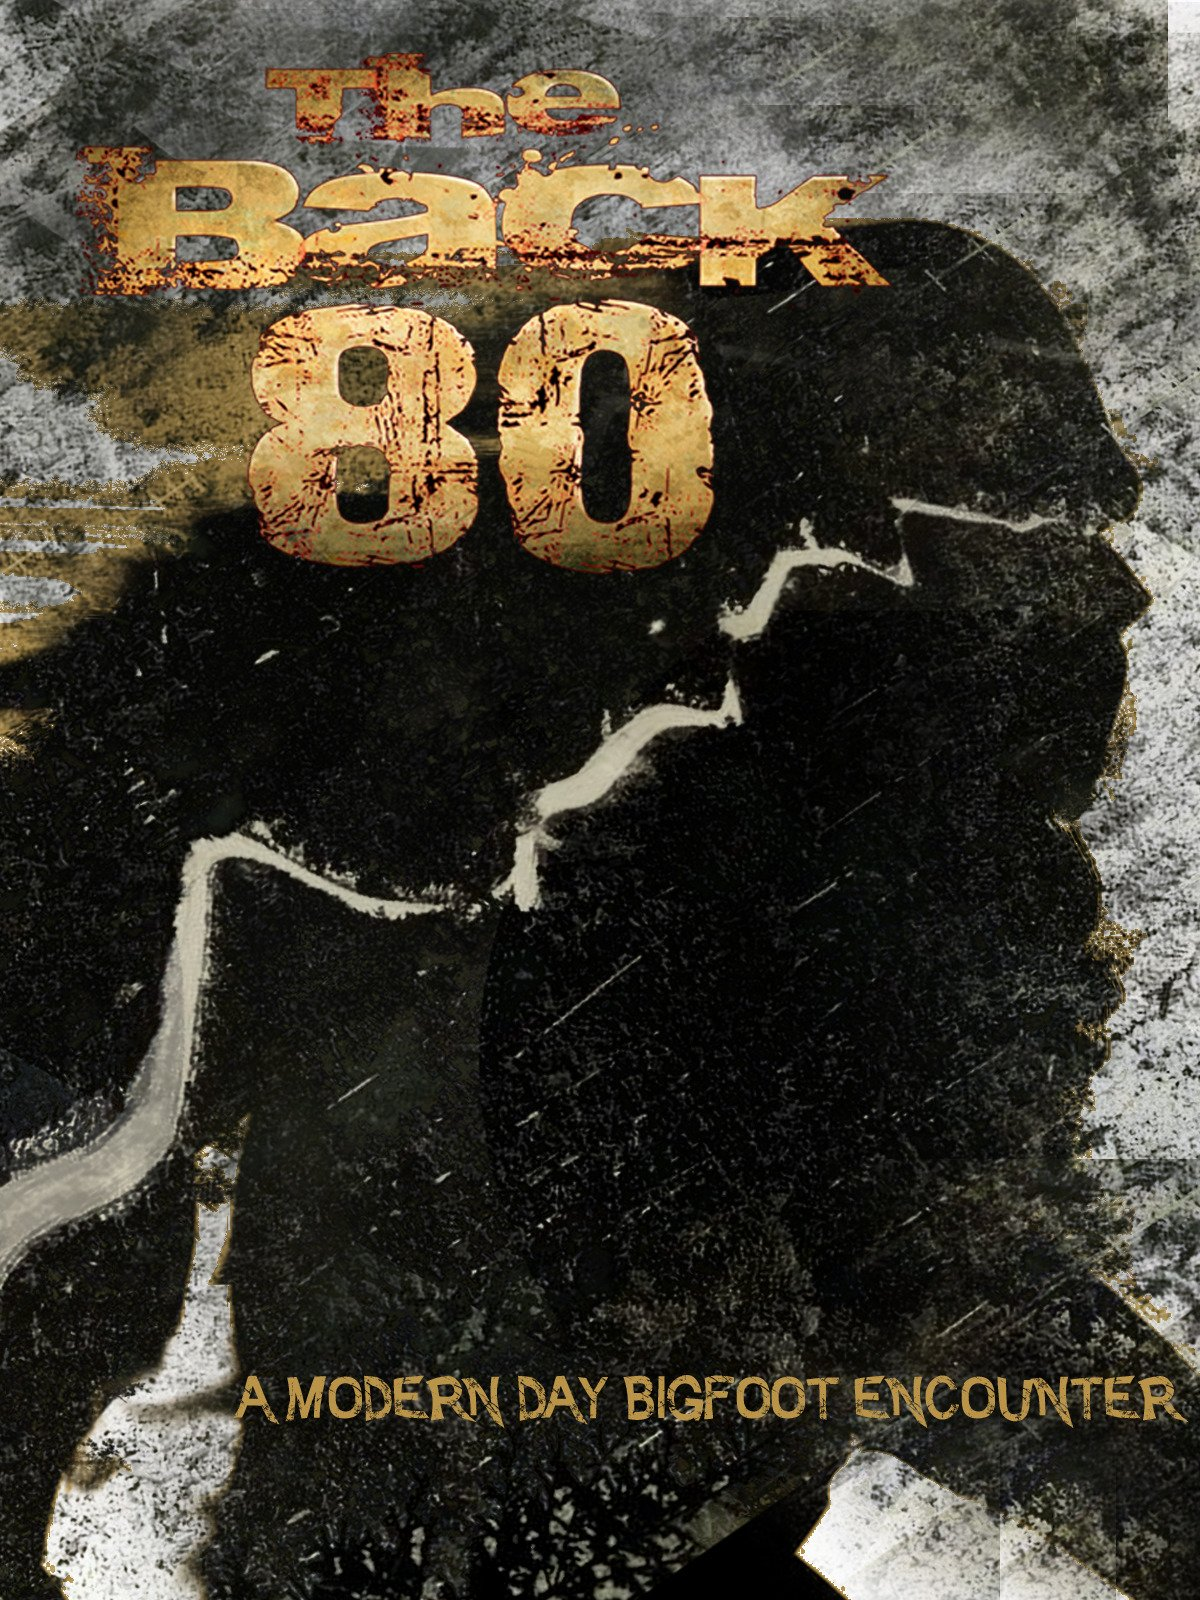 The Back 80: A Modern Day Bigfoot Encounter